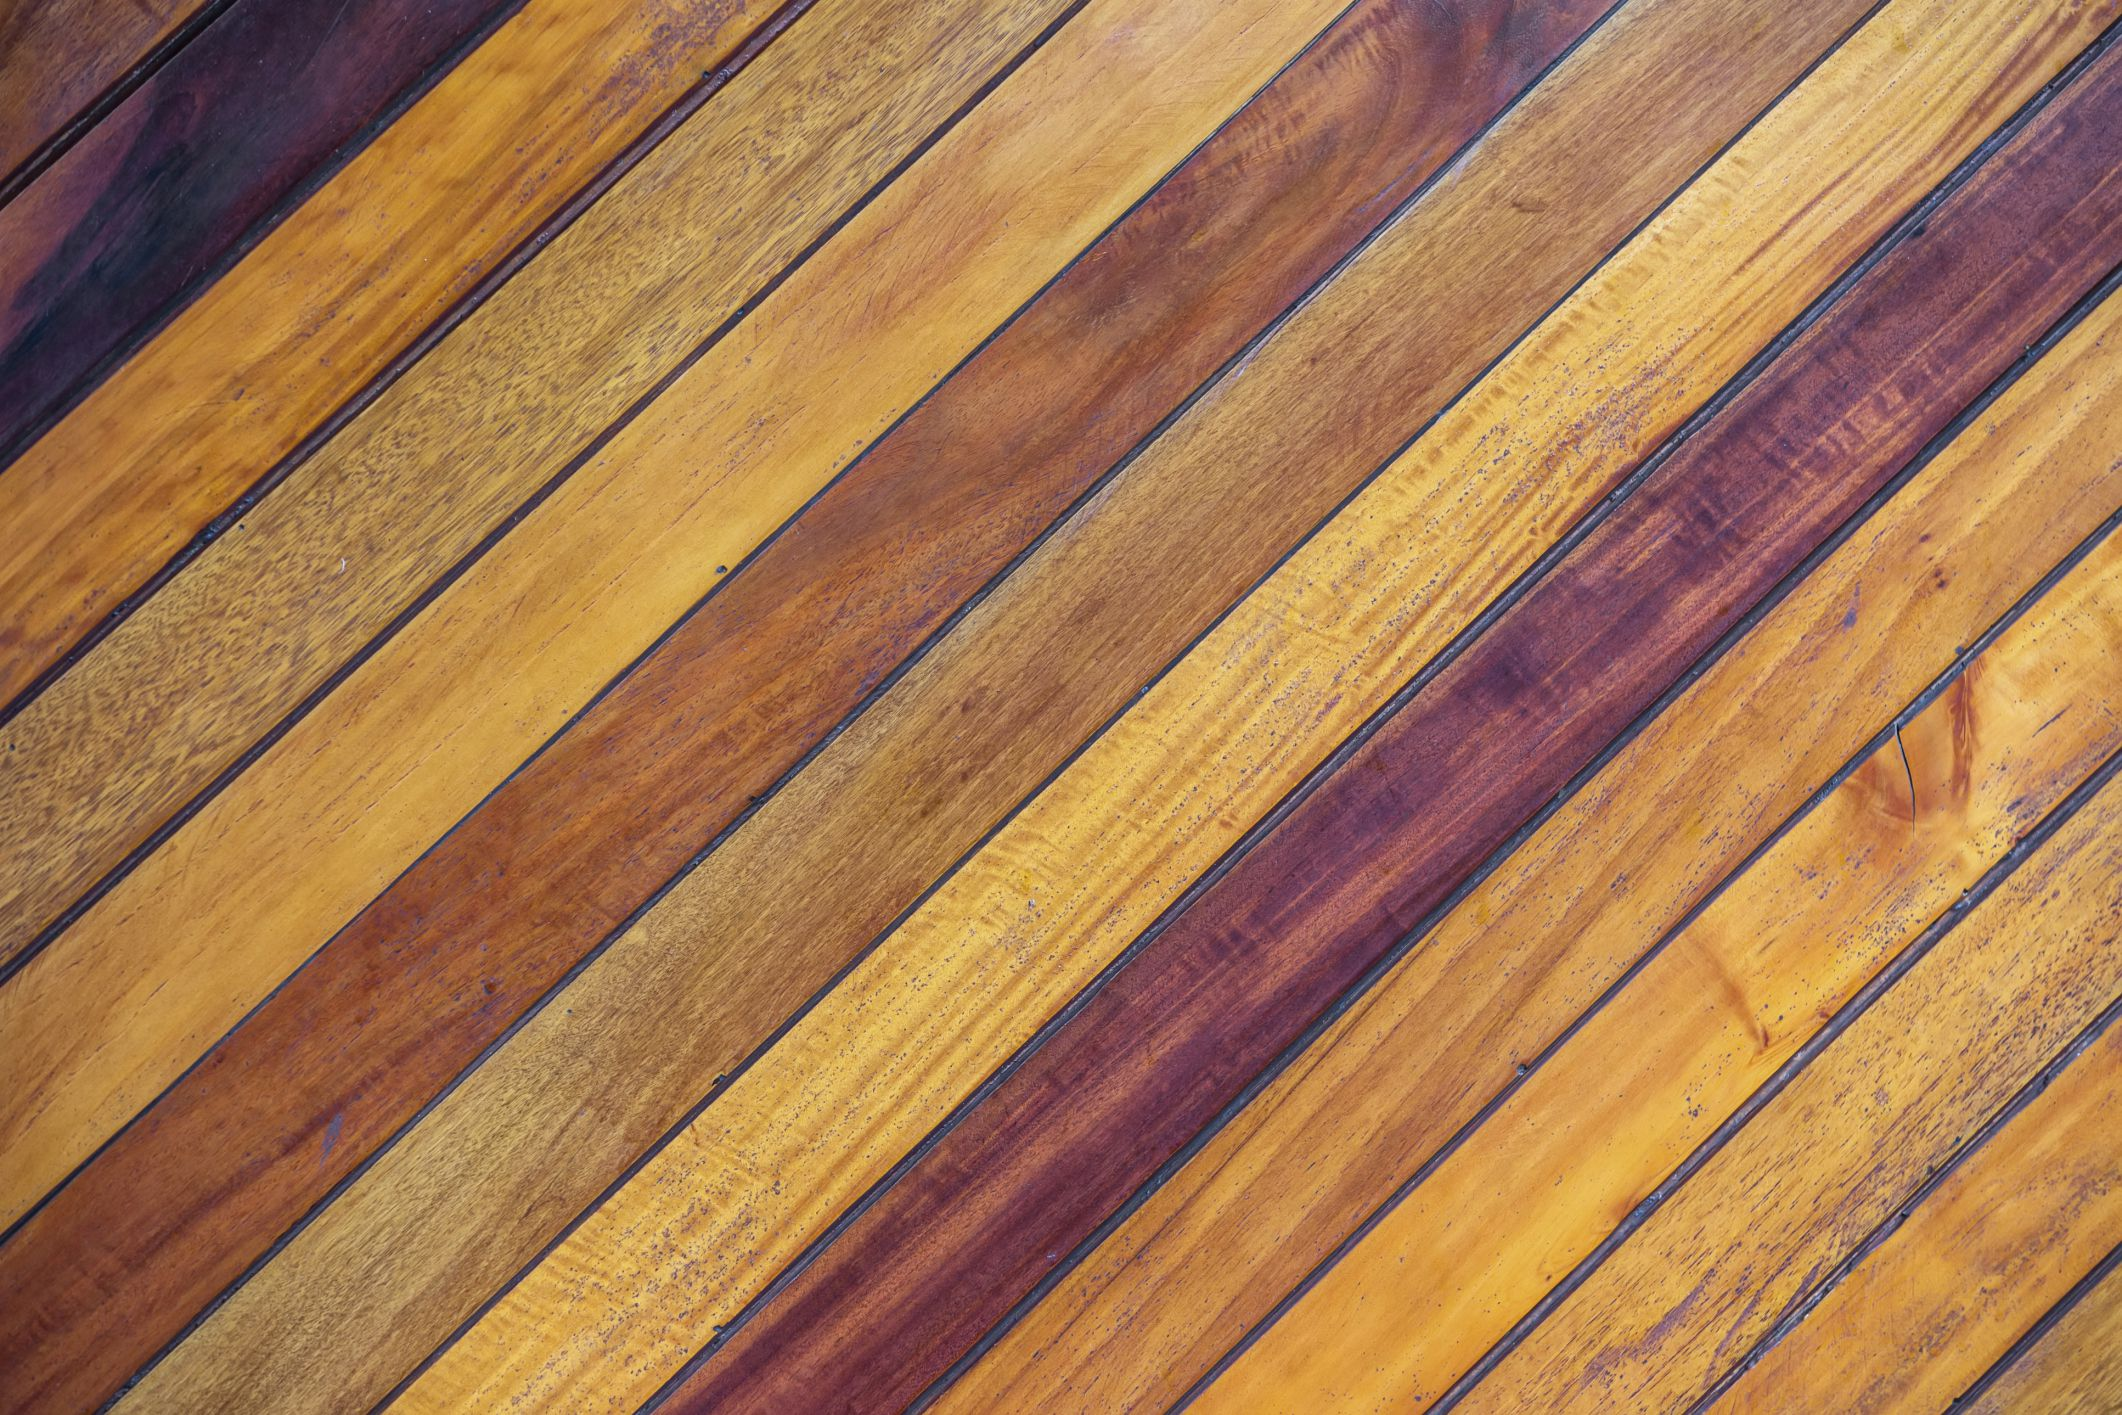 laminate tile flooring kitchen small remodel ideas how to fix wavy, uneven wood subflooring